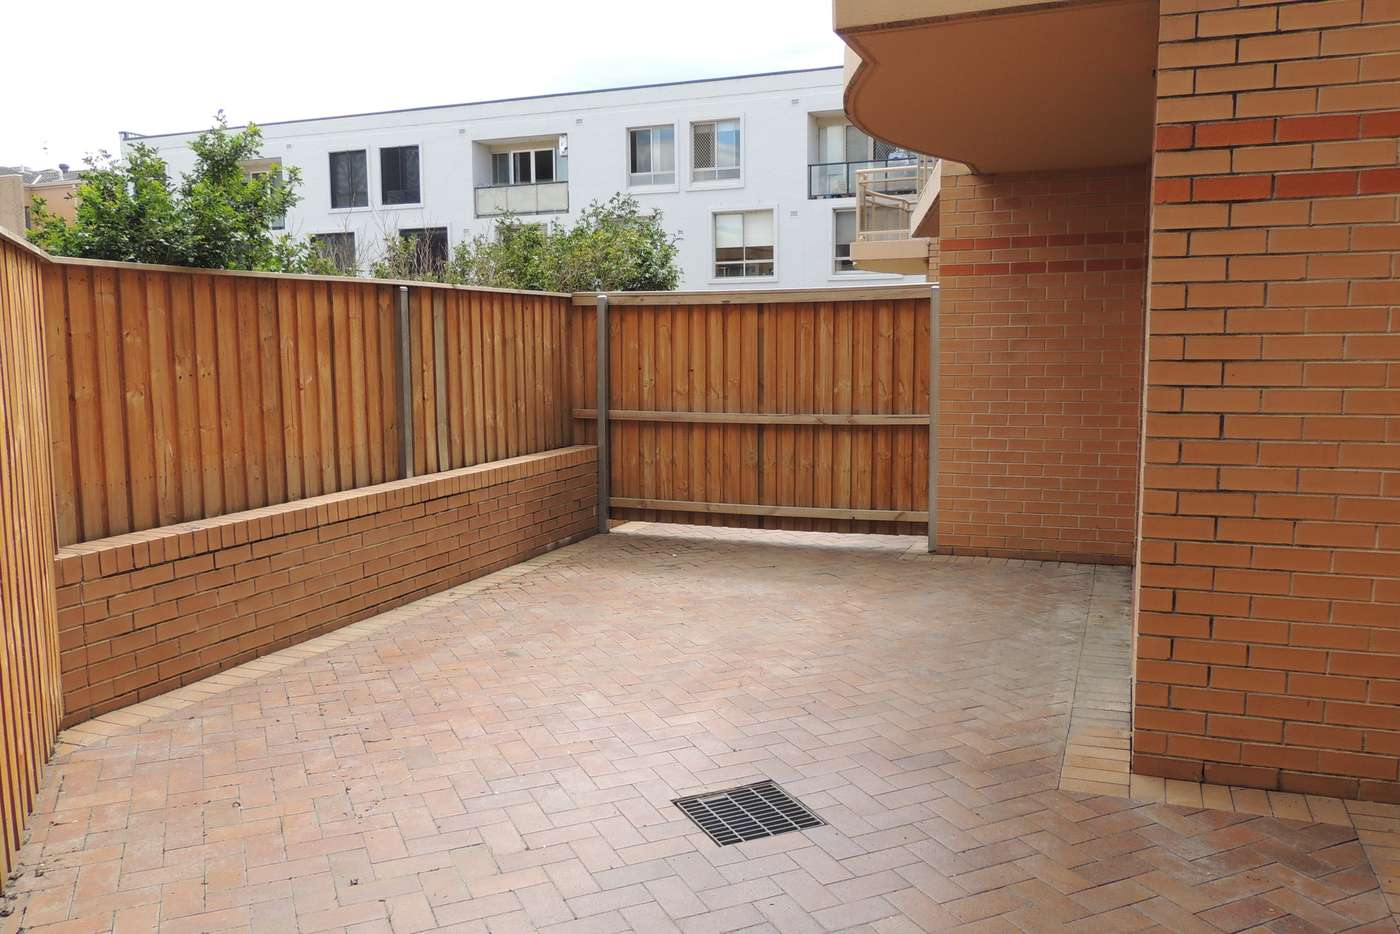 Seventh view of Homely apartment listing, 10/927 Victoria Road, West Ryde NSW 2114